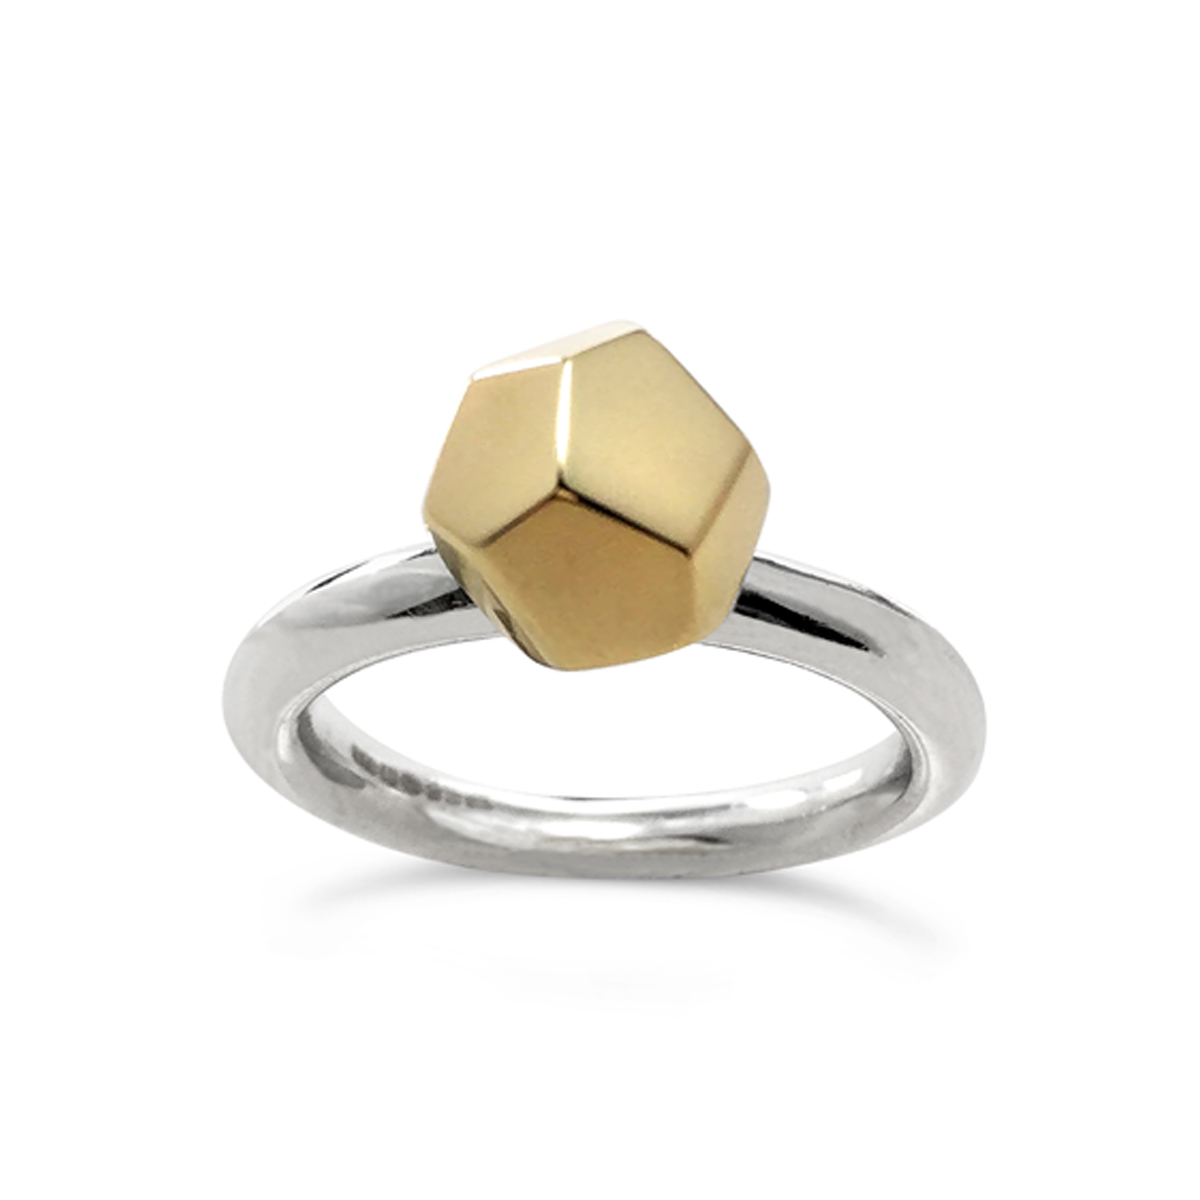 Decca ring 9ct gold and silver